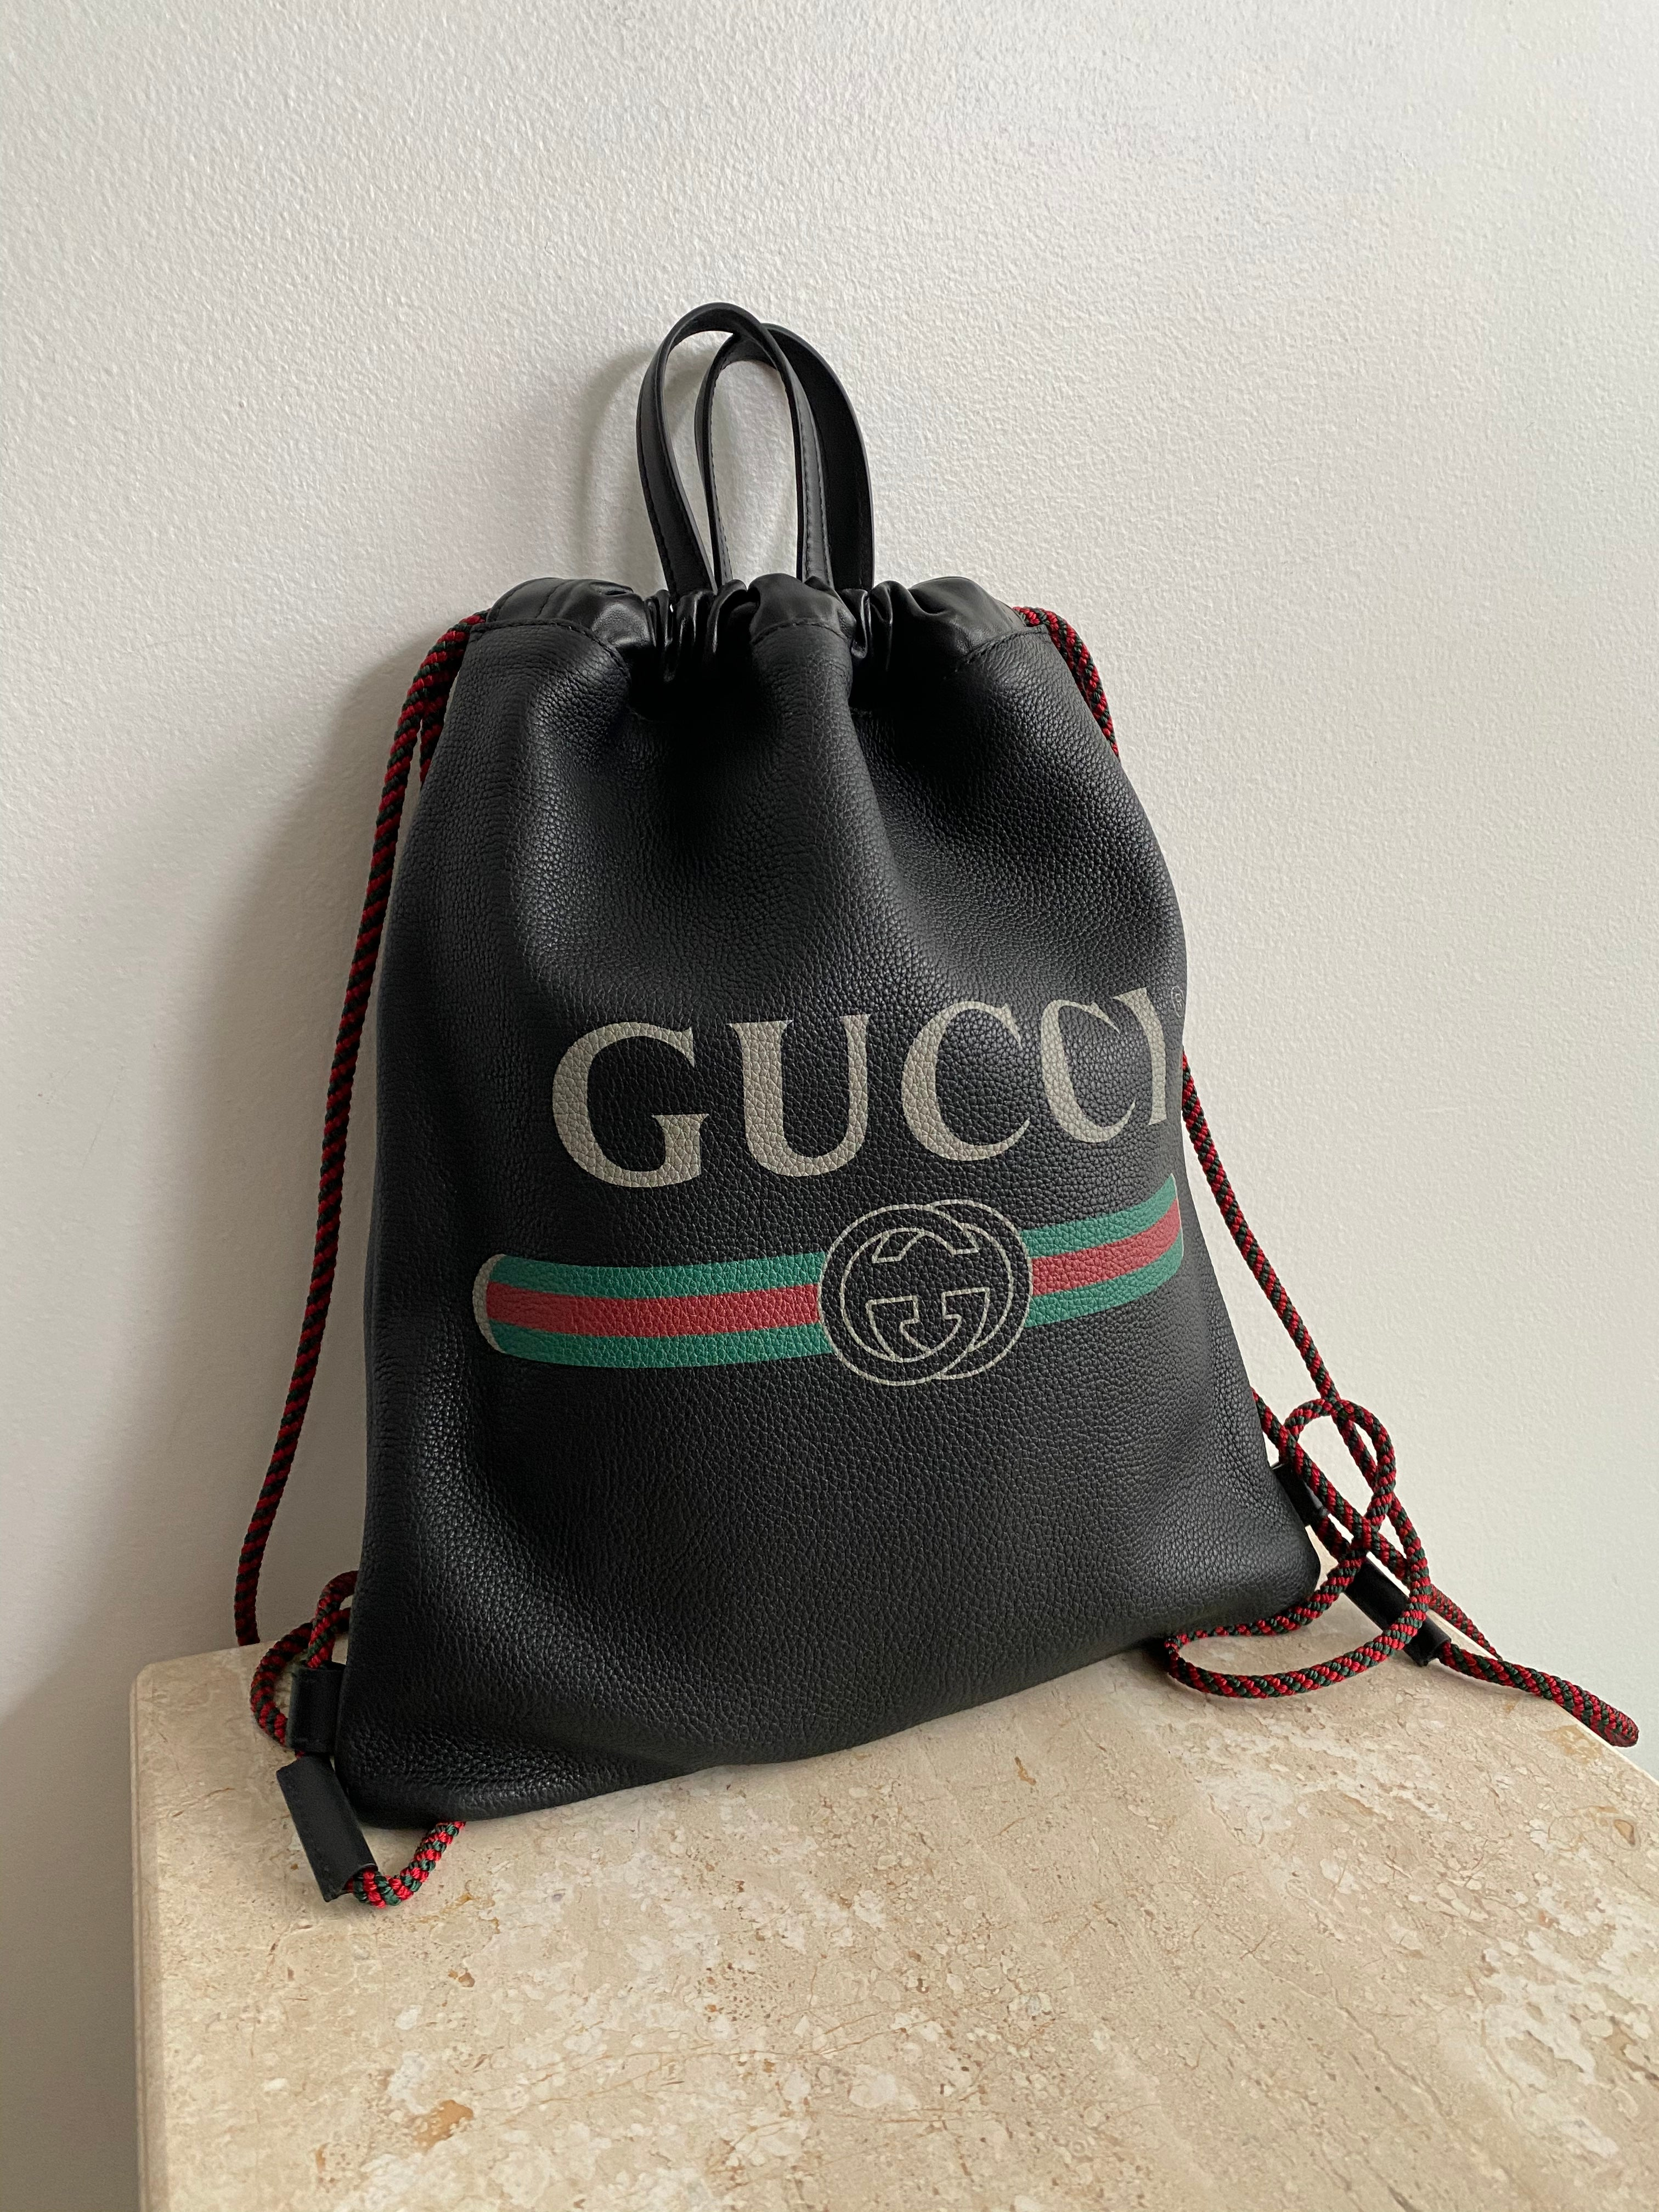 Authentic GUCCI Black Vintage Logo Drawstring Backpack